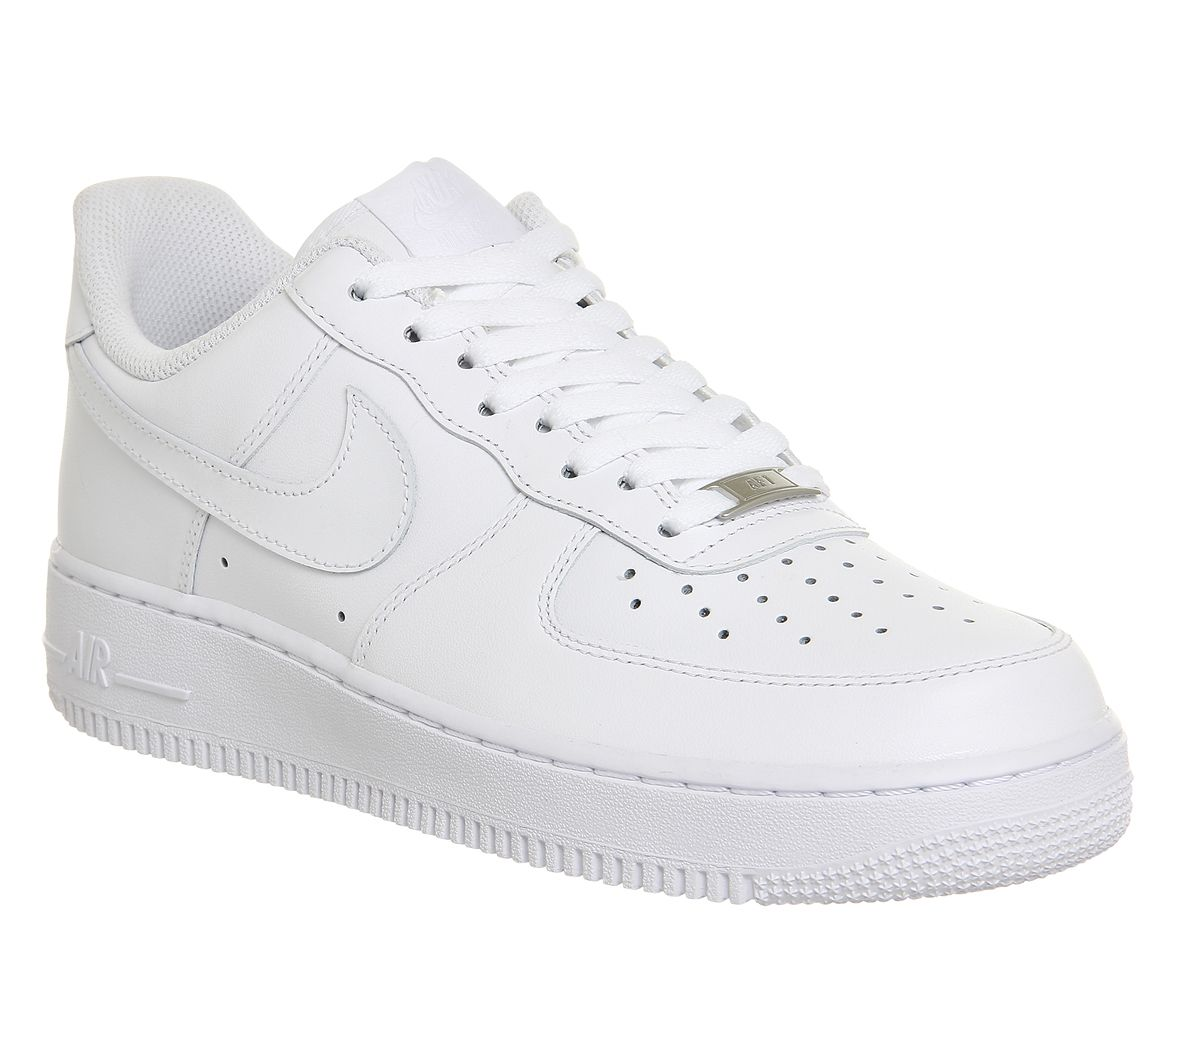 official photos 41be2 a677b Nike Air Force 1 Trainers White - His trainers